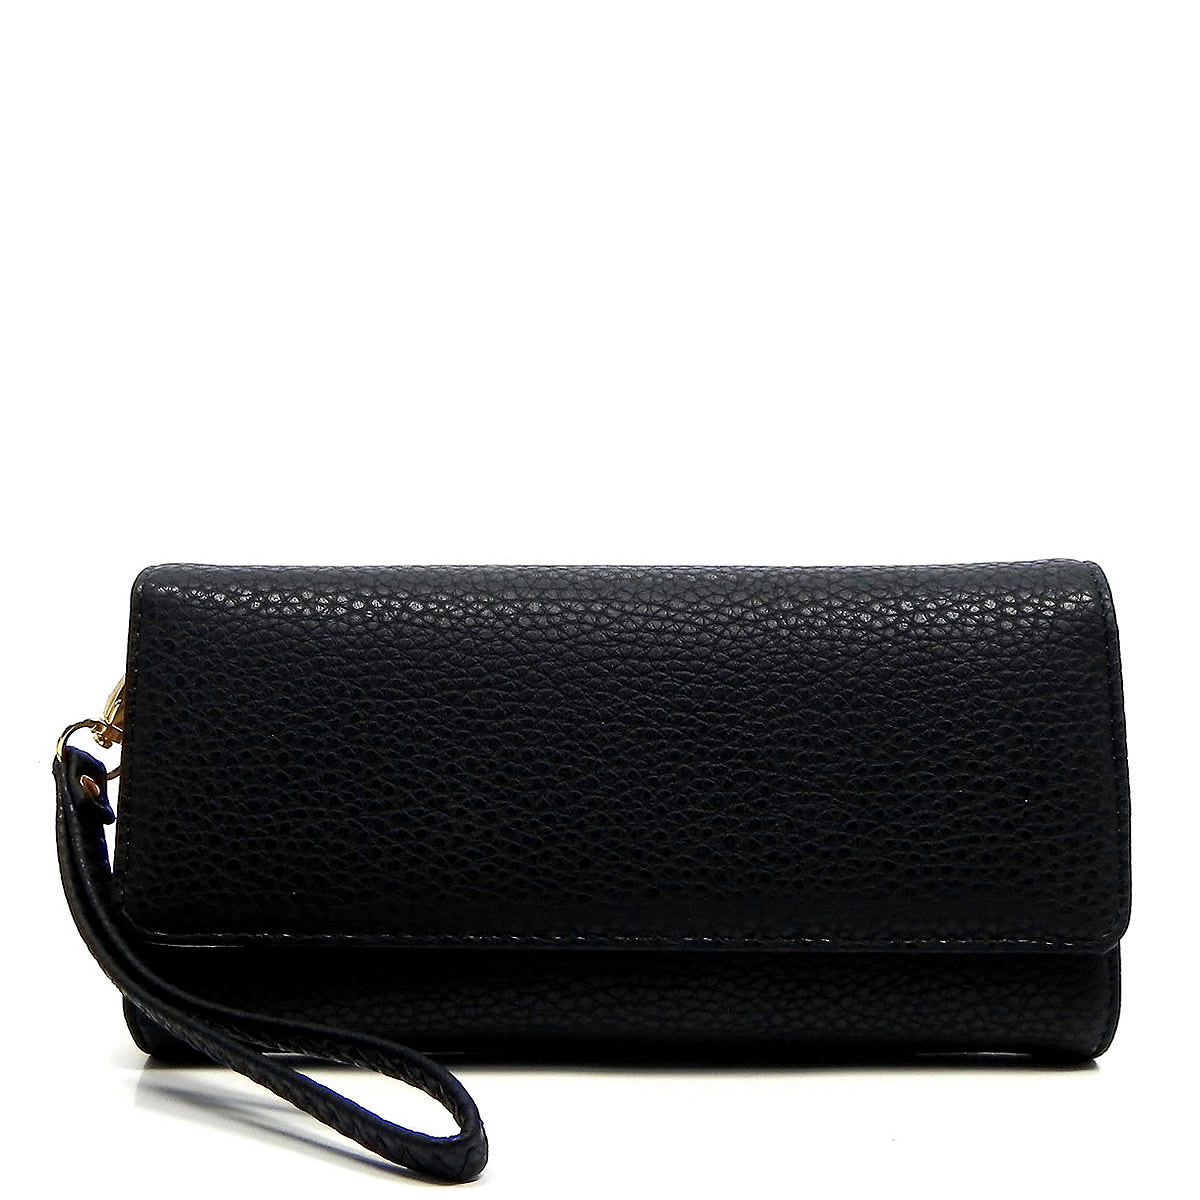 Marley Wristlet in Black